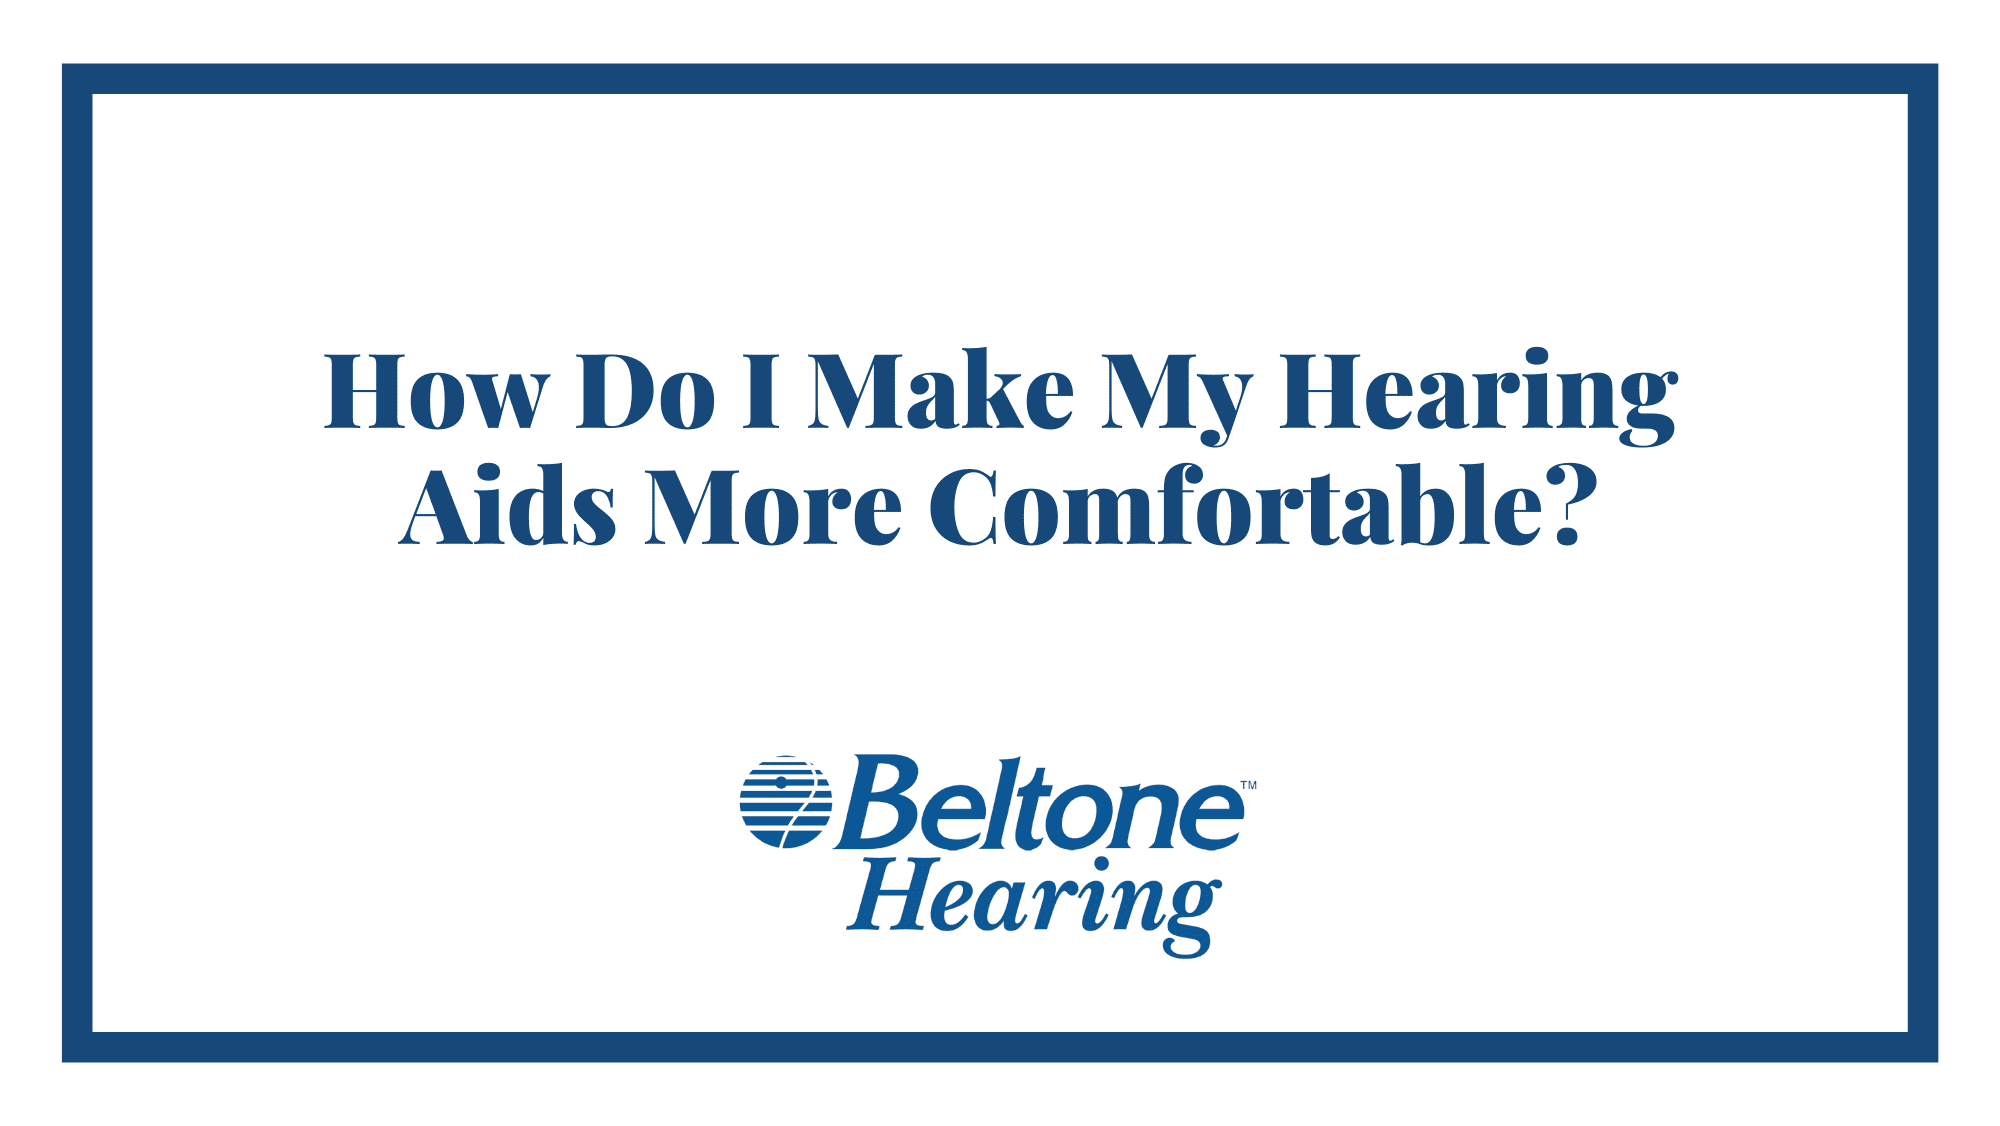 How Do I Make My Hearing Aids More Comfortable?